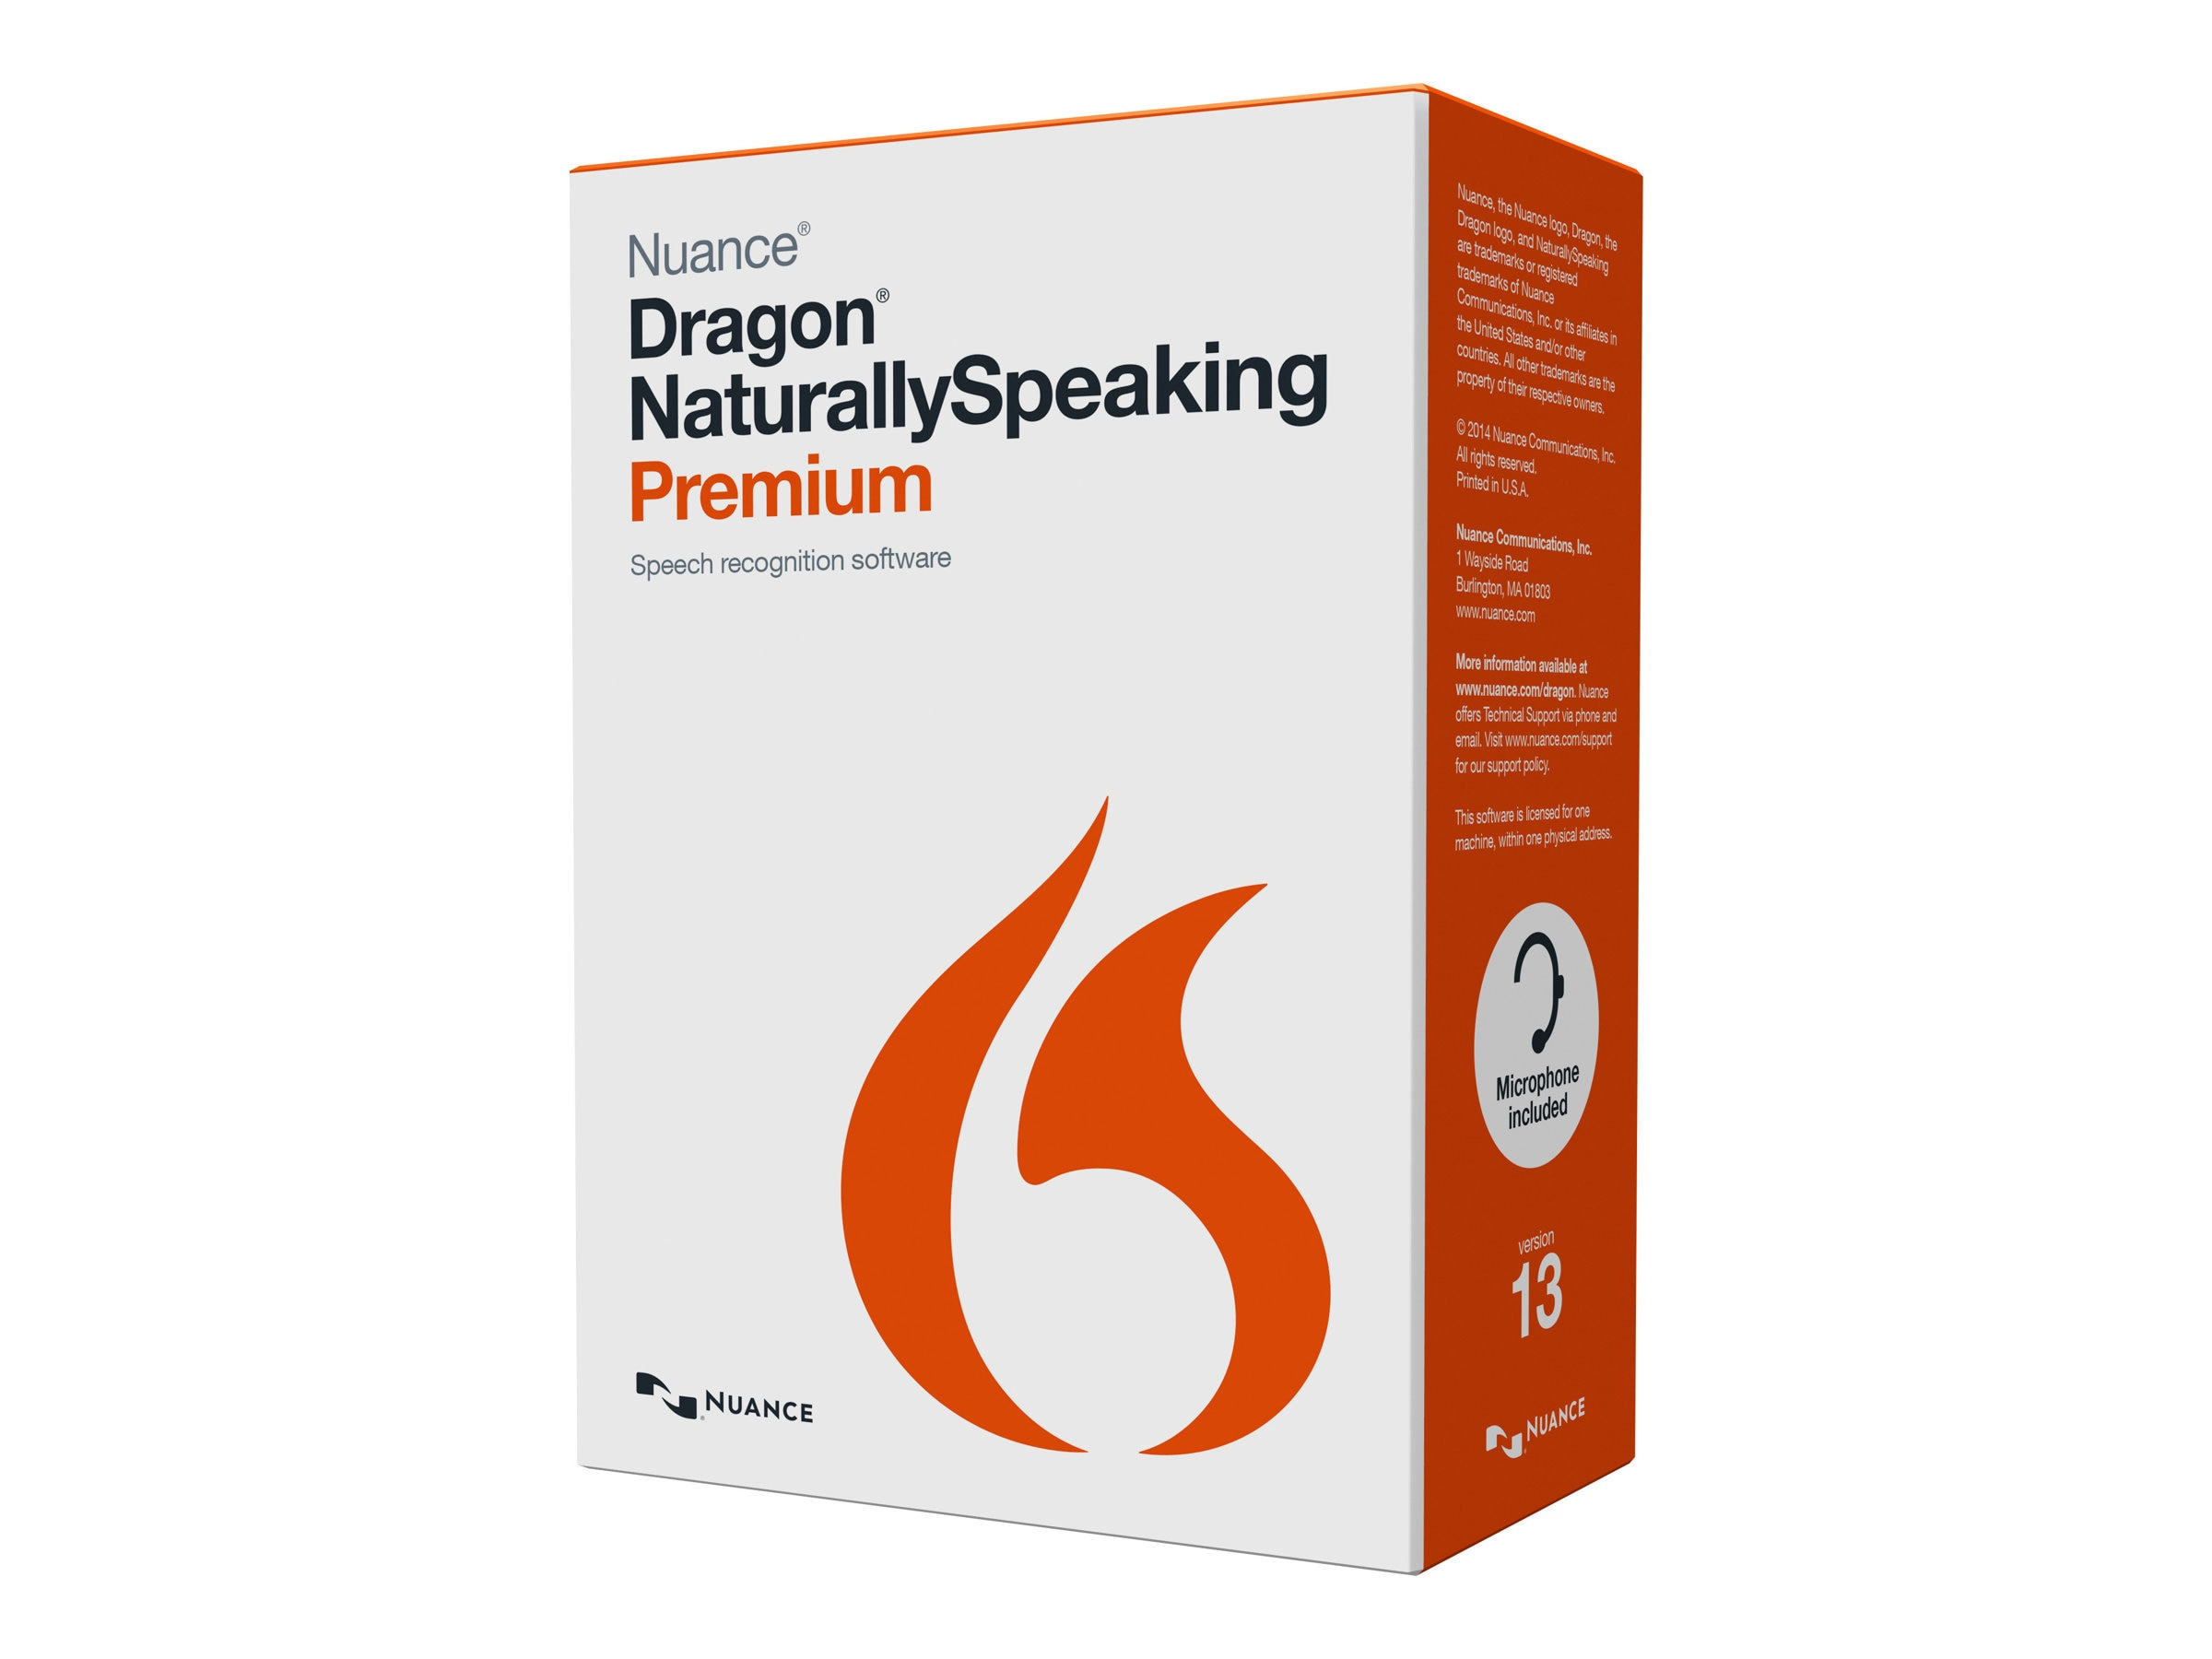 Nuance Dragon NaturallySpeaking 13.0 Premium US Mailer Without Headset